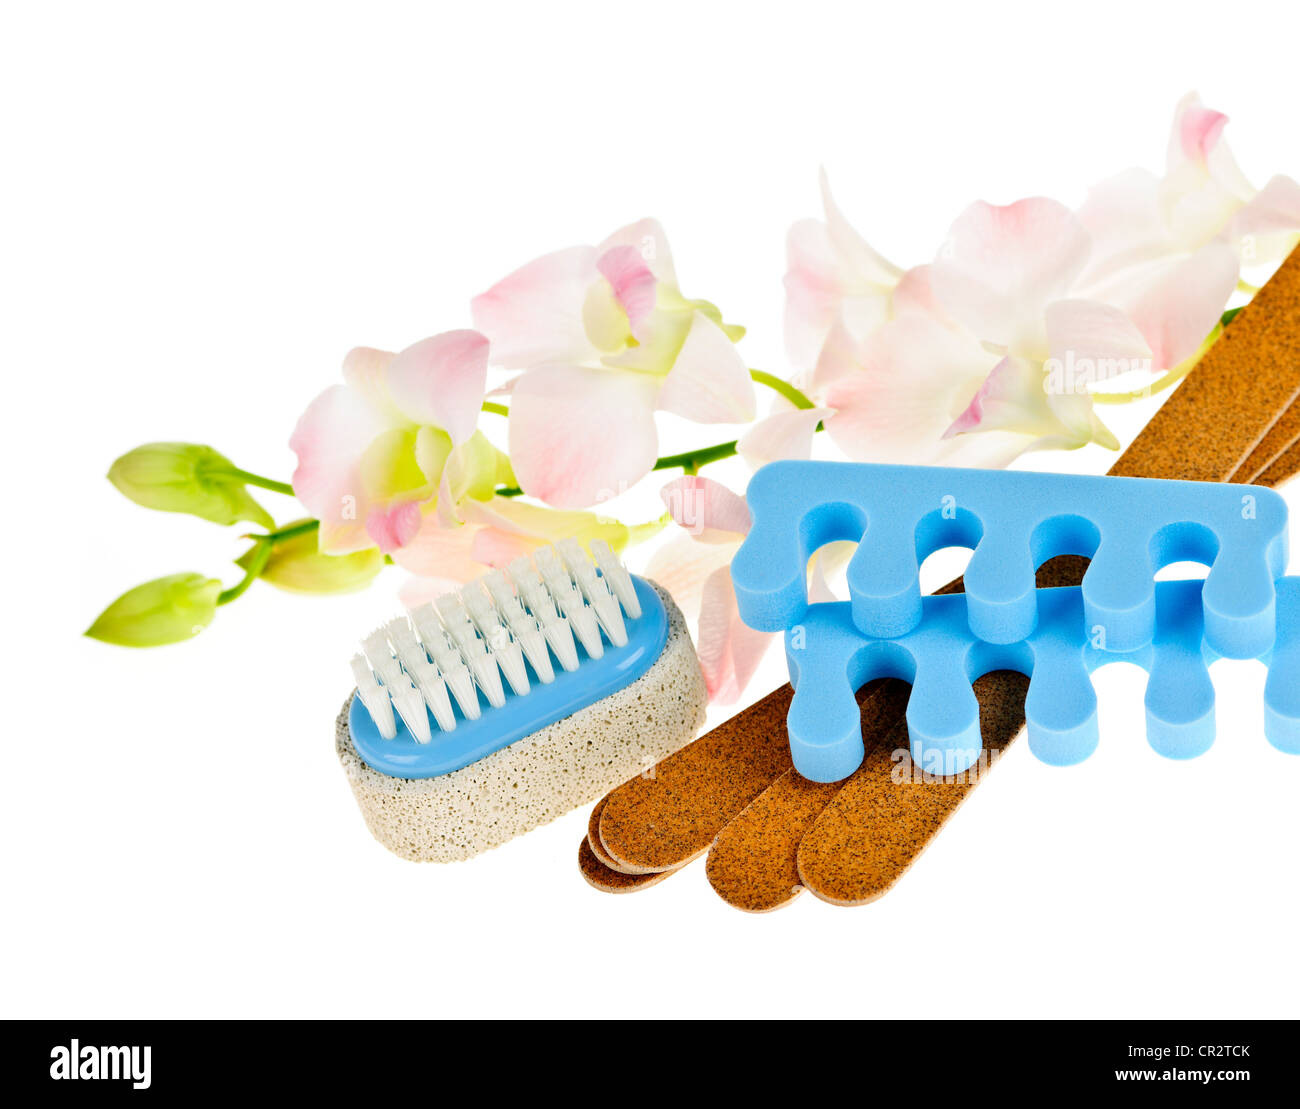 Pedicure accessories with orchid flowers on white background - Stock Image